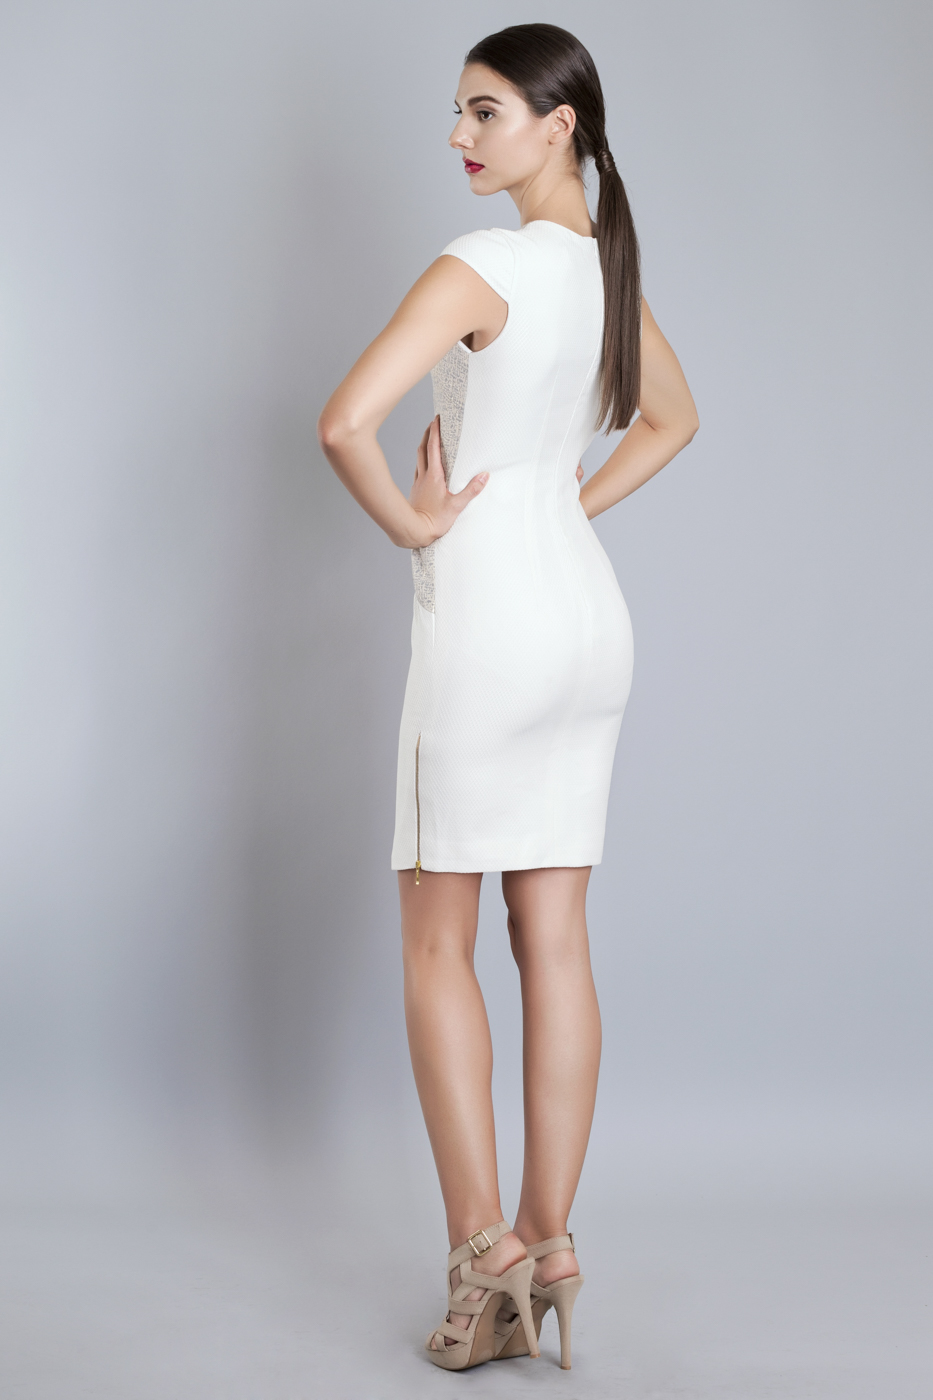 Lookbook-Photo-Shoot-For-Kevin-V-Thai-Debut-Collection-DC-Ksenia-Pro-Photography-22